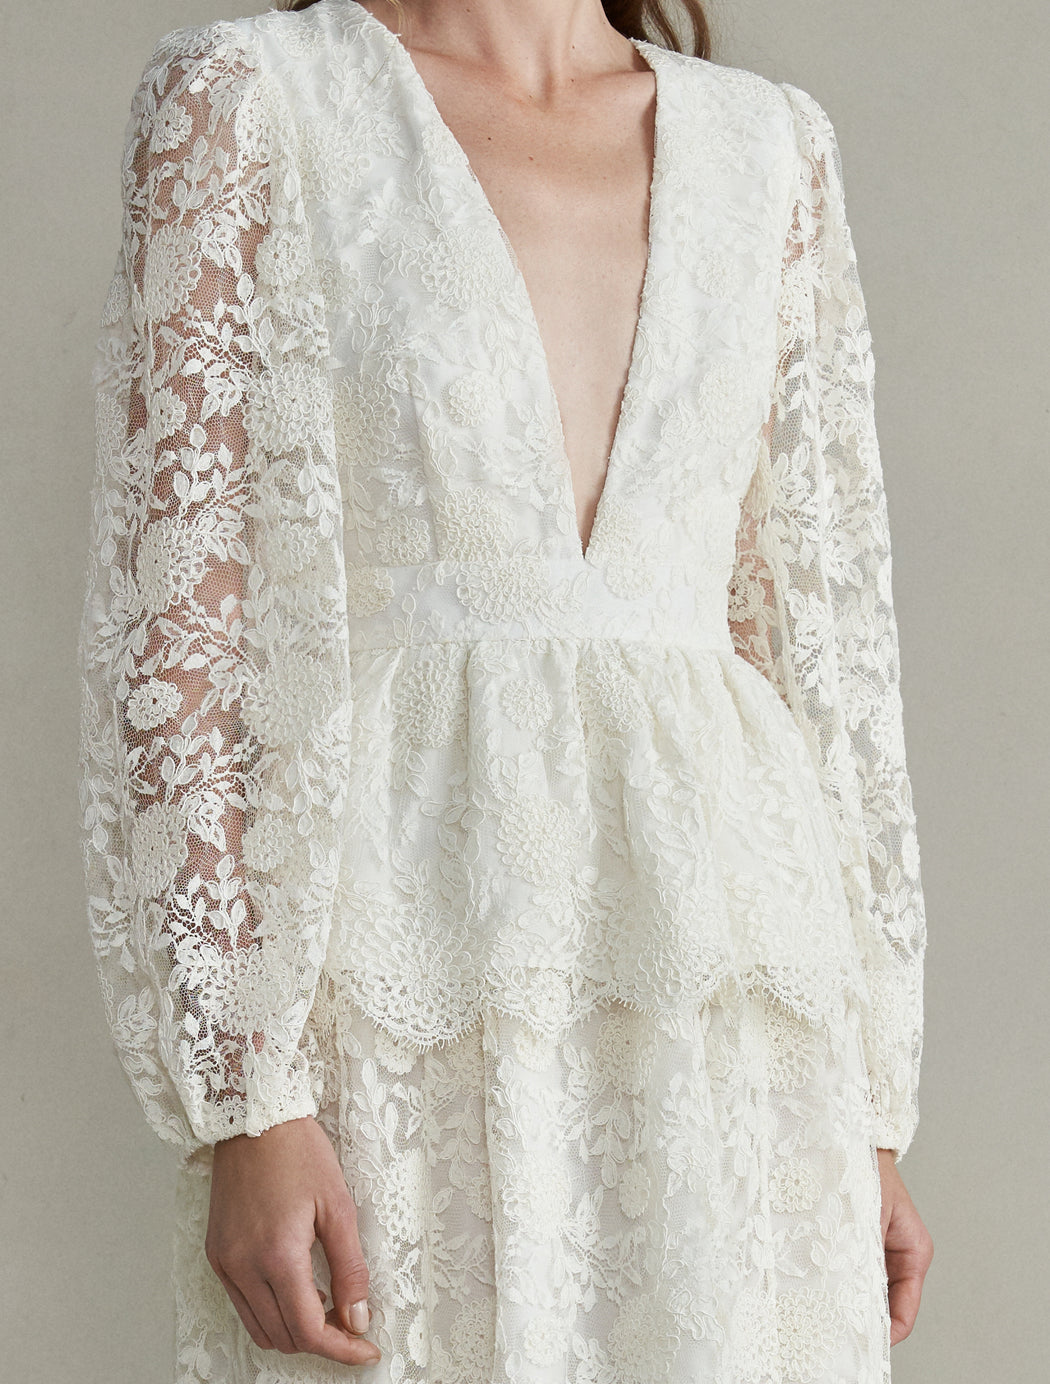 Aphrodite White Lace Gown